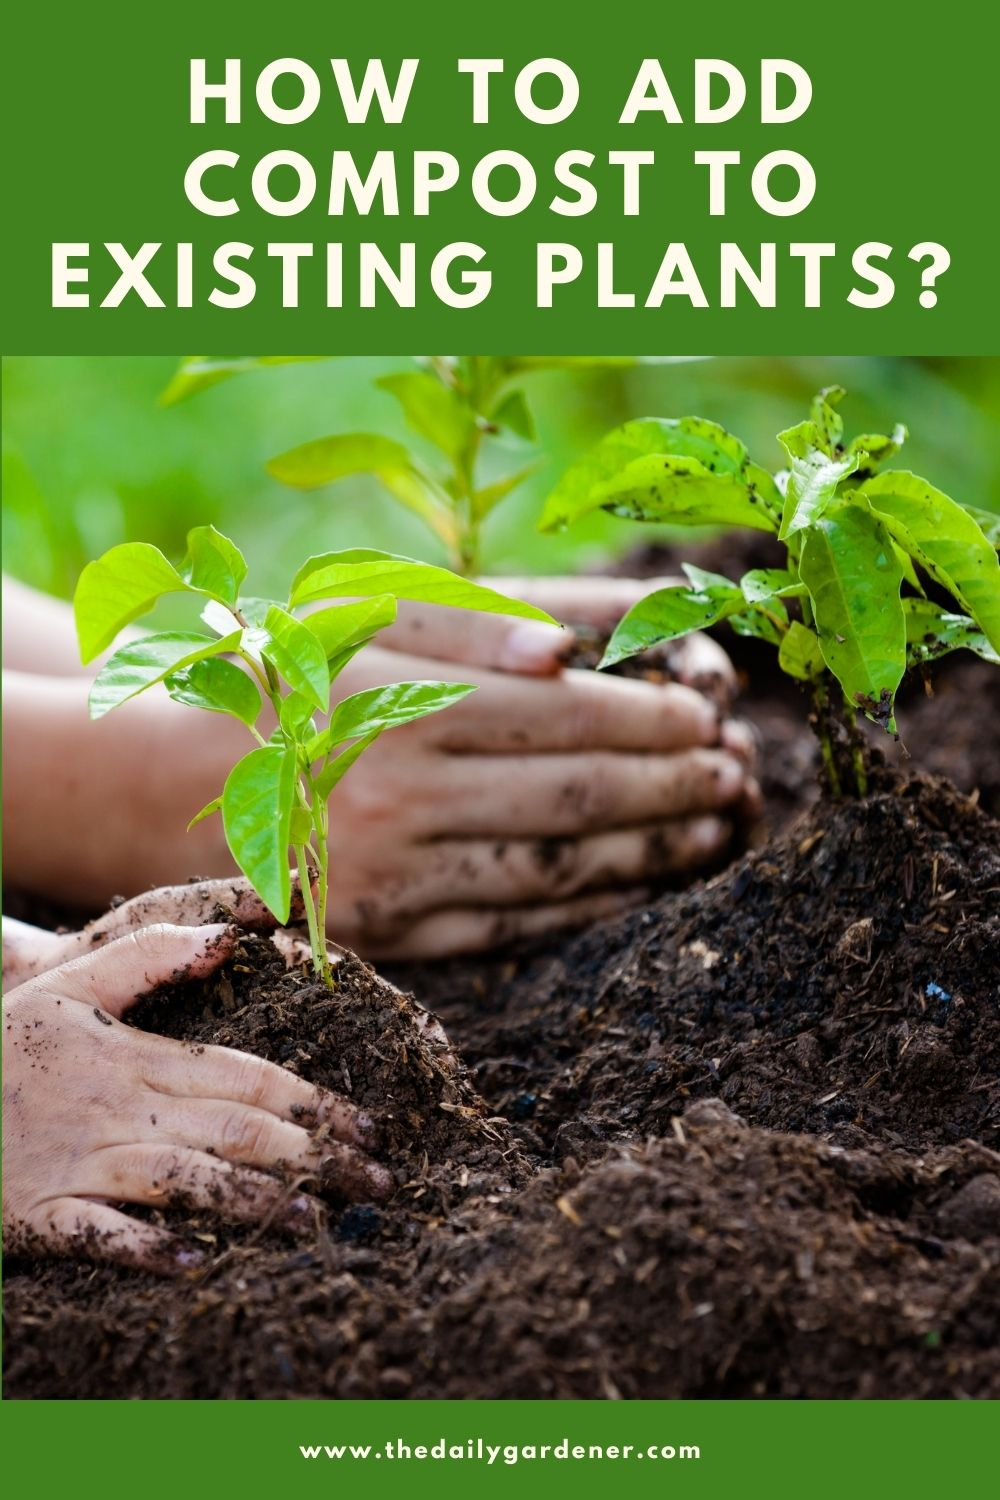 How to Add Compost to Existing Plants 1